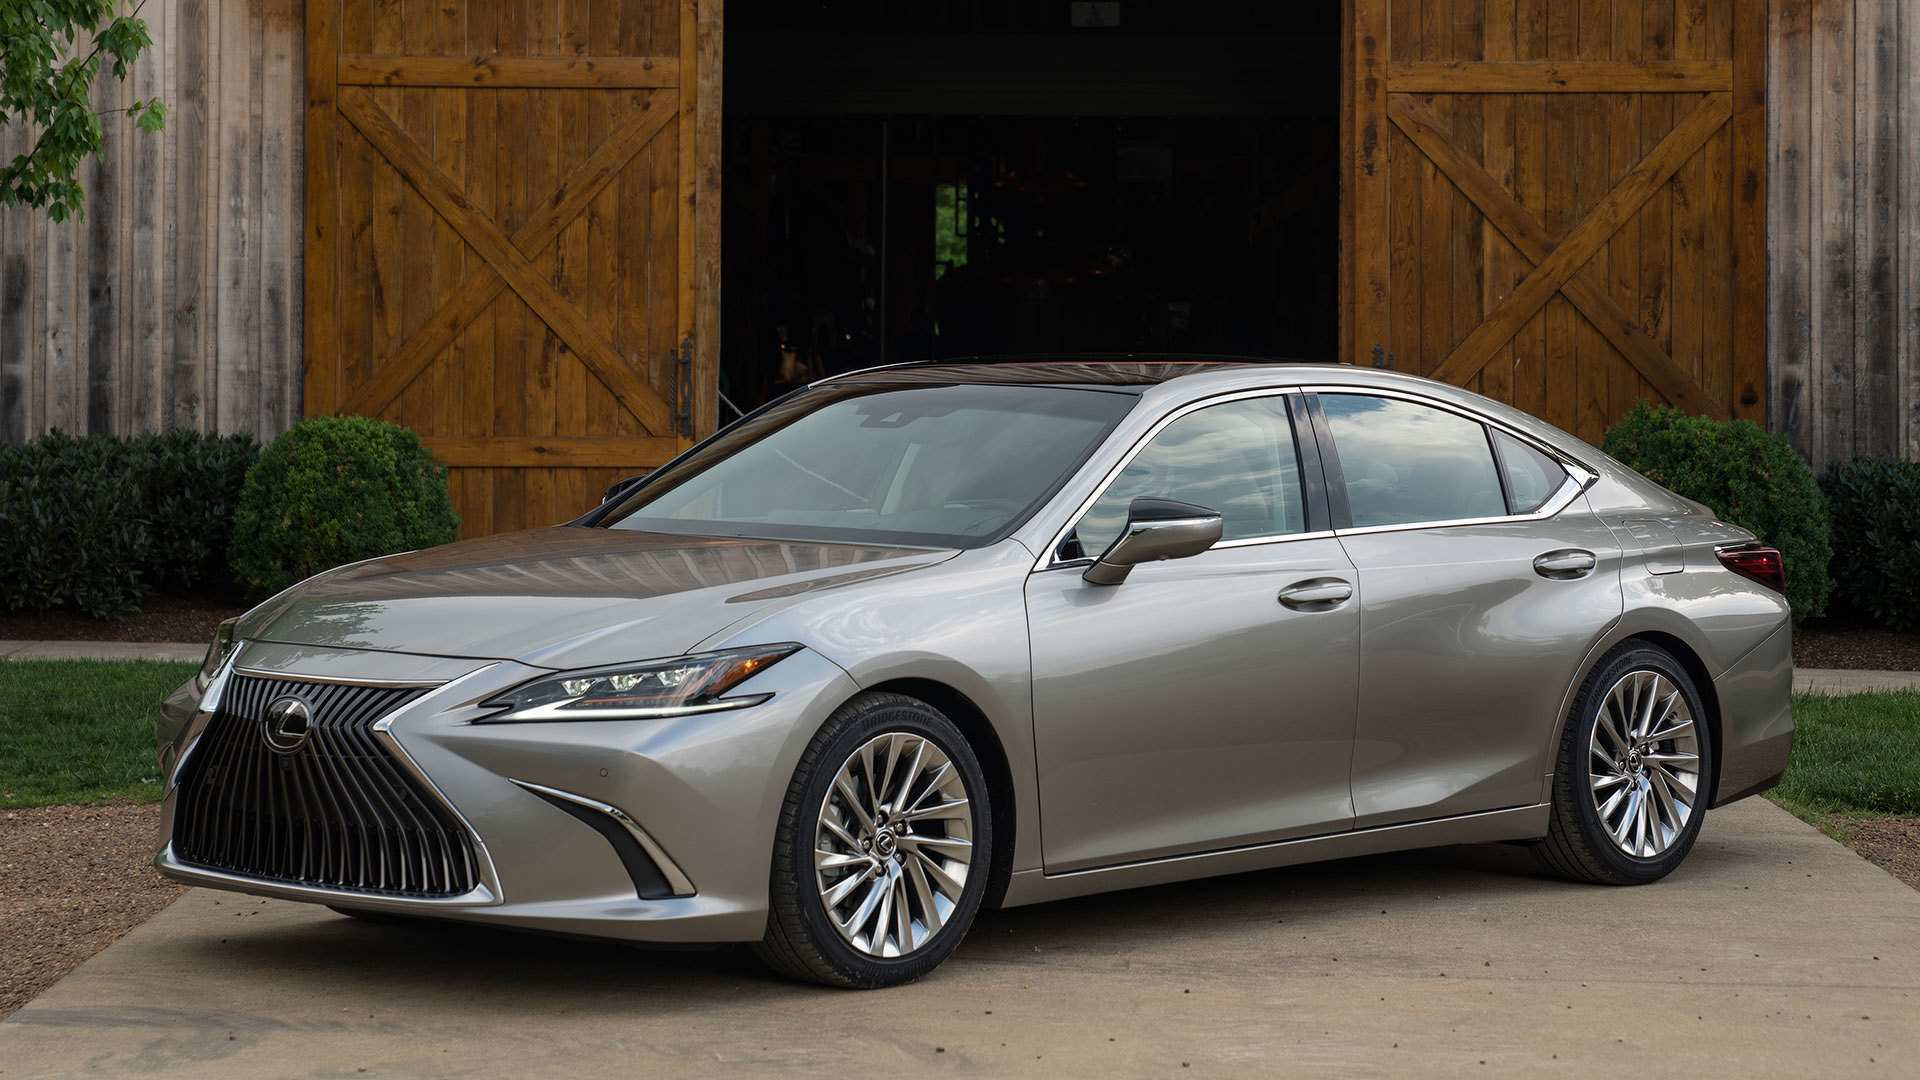 84 All New 2019 Lexus Es 350 Interior Redesign And Review